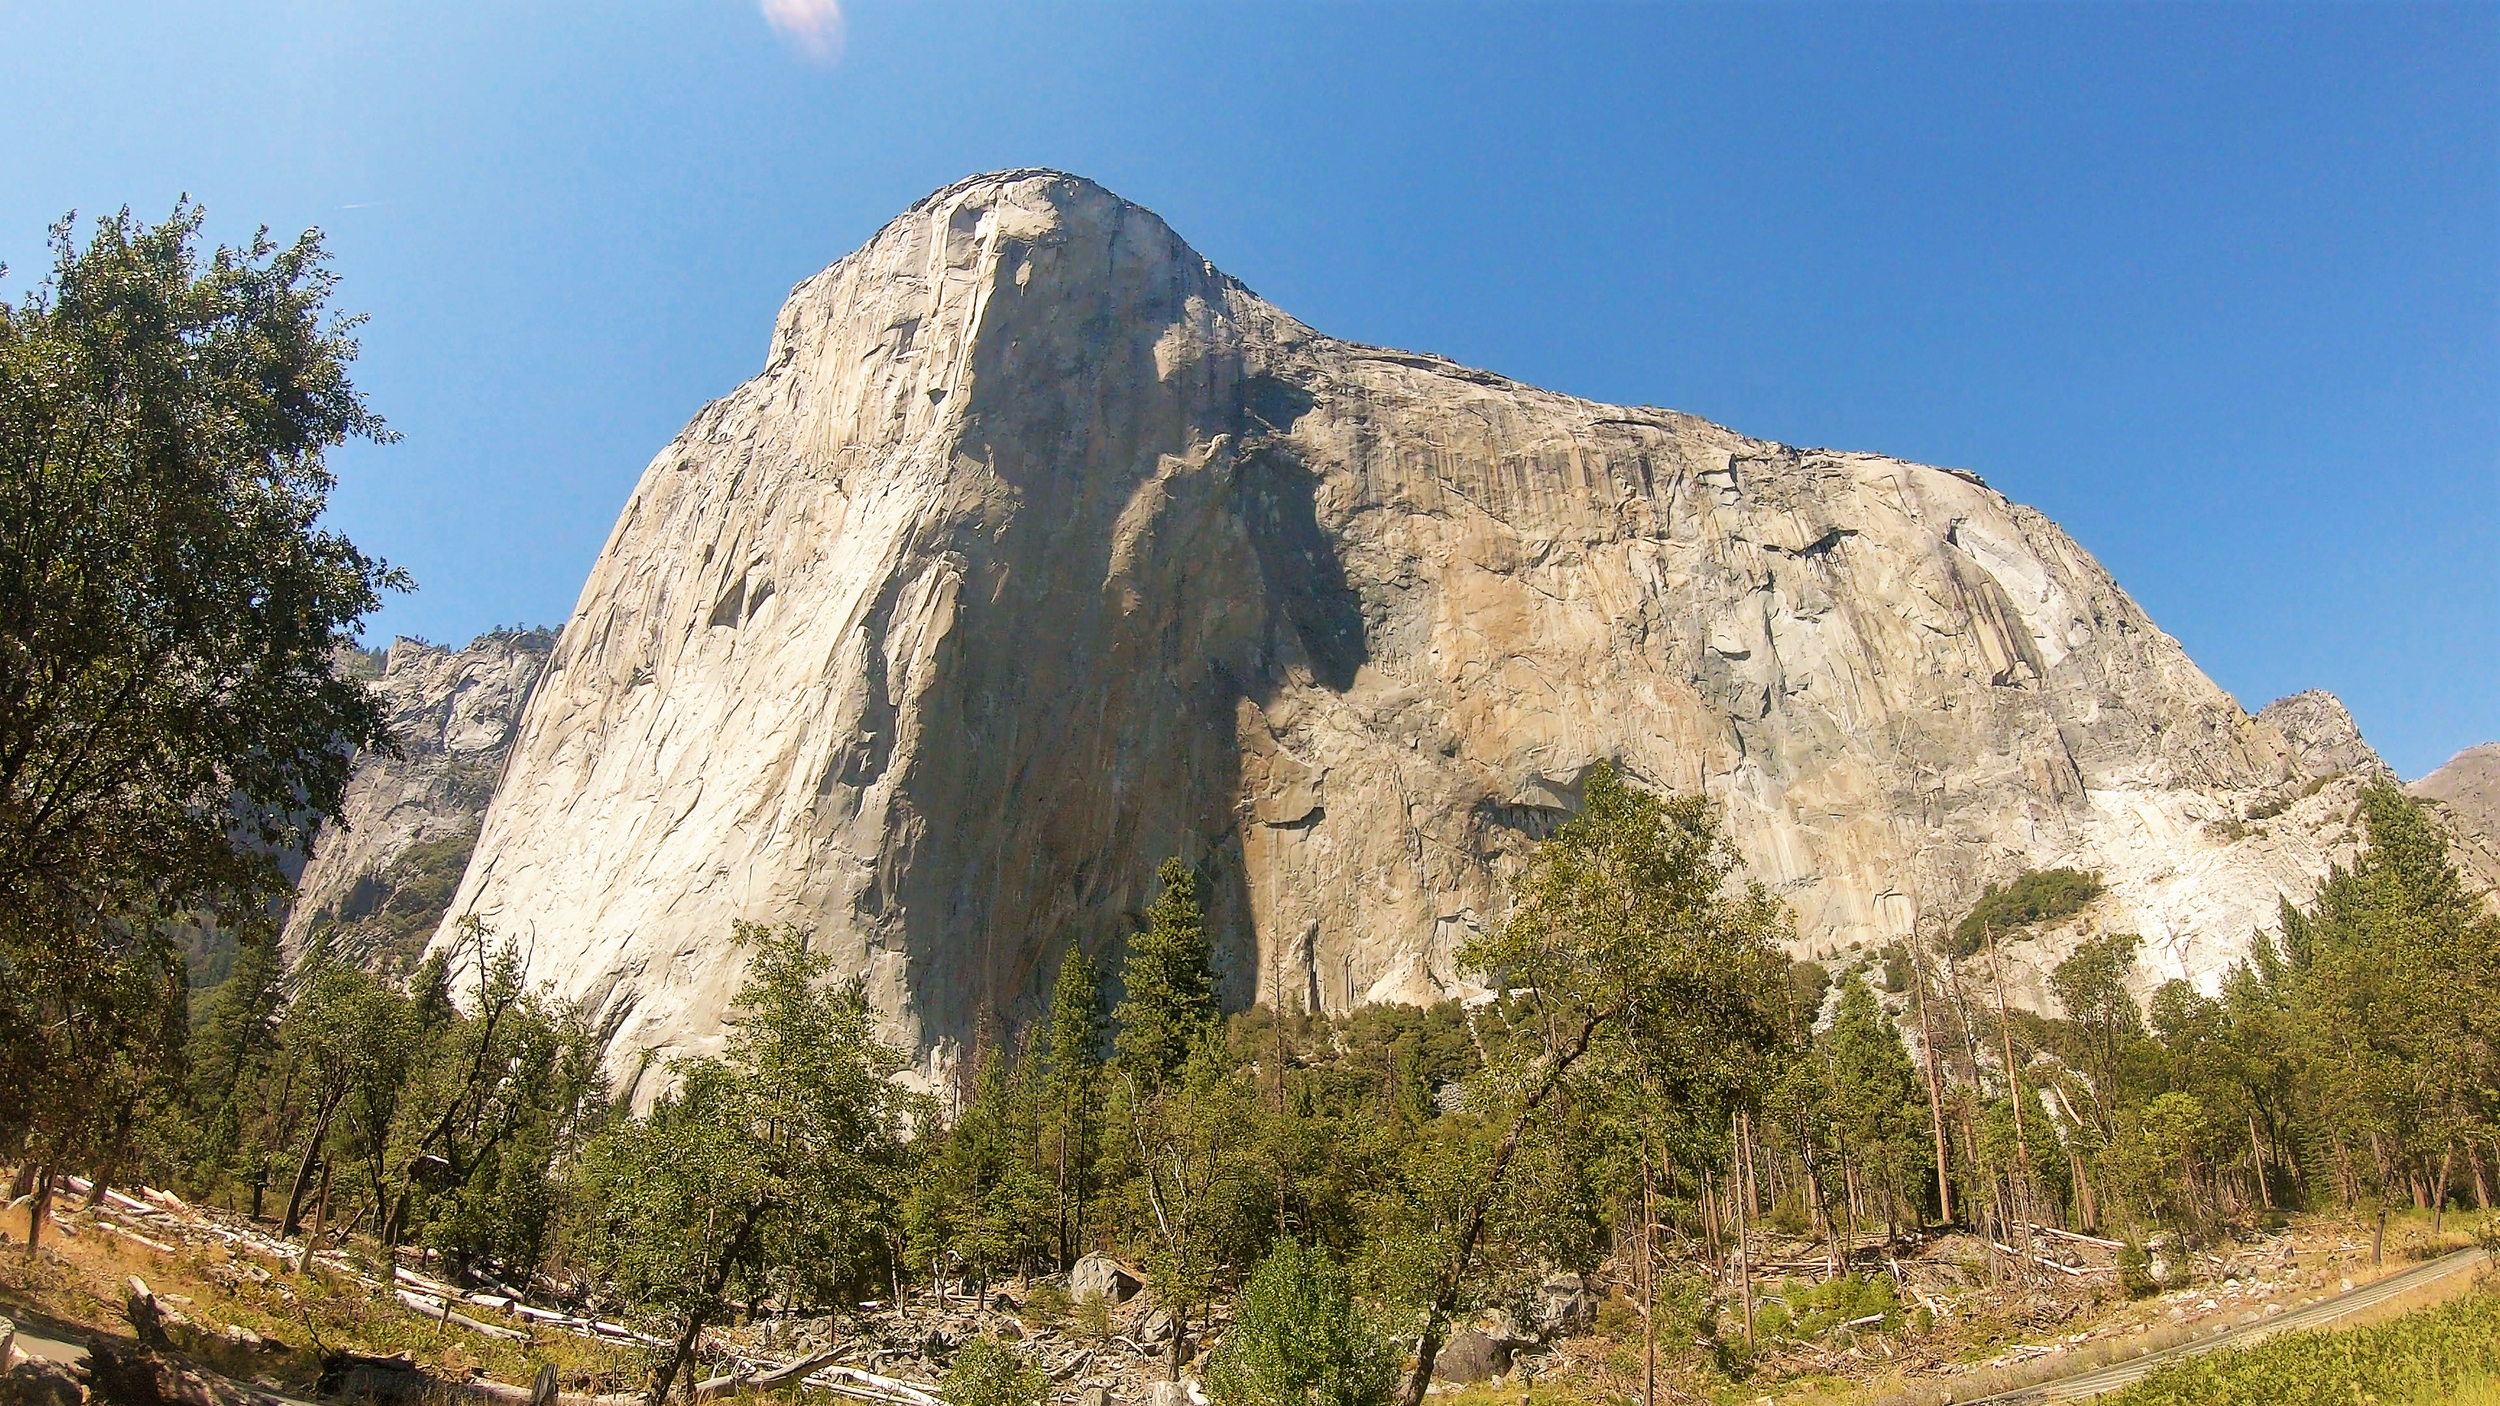 El Capitan at Yosemite National Park